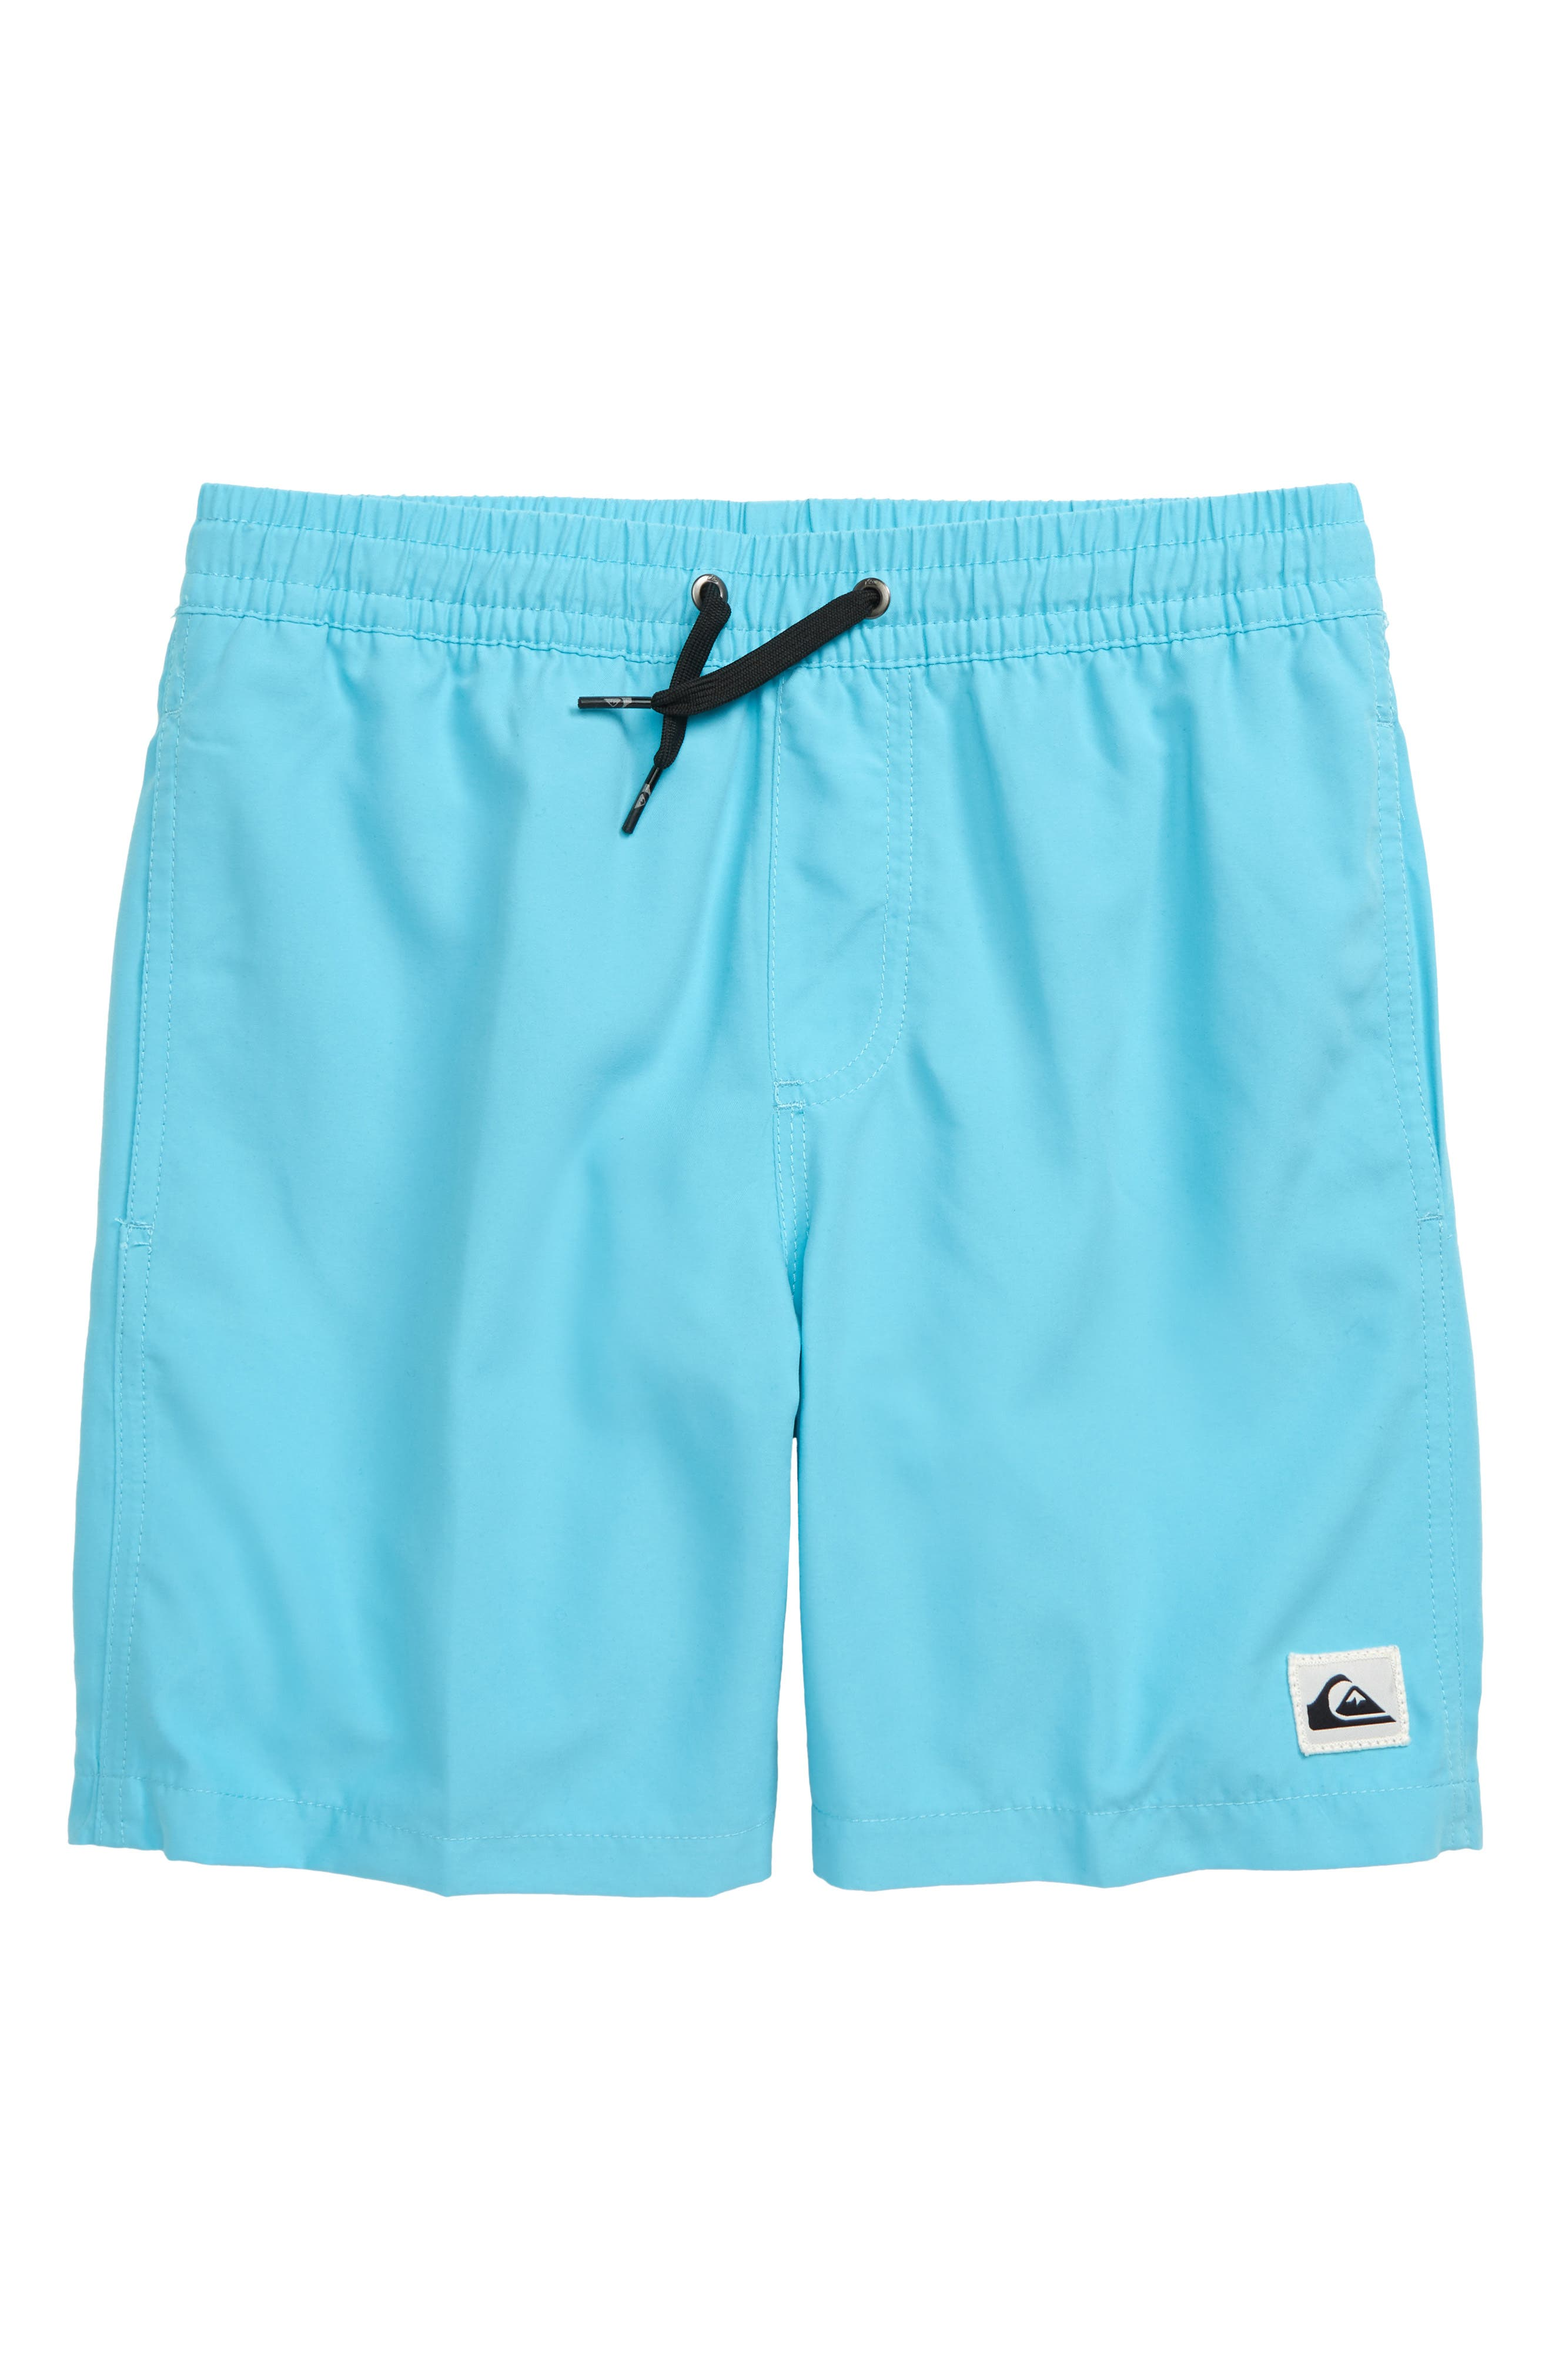 Image of Quiksilver Everyday Volley Shorts